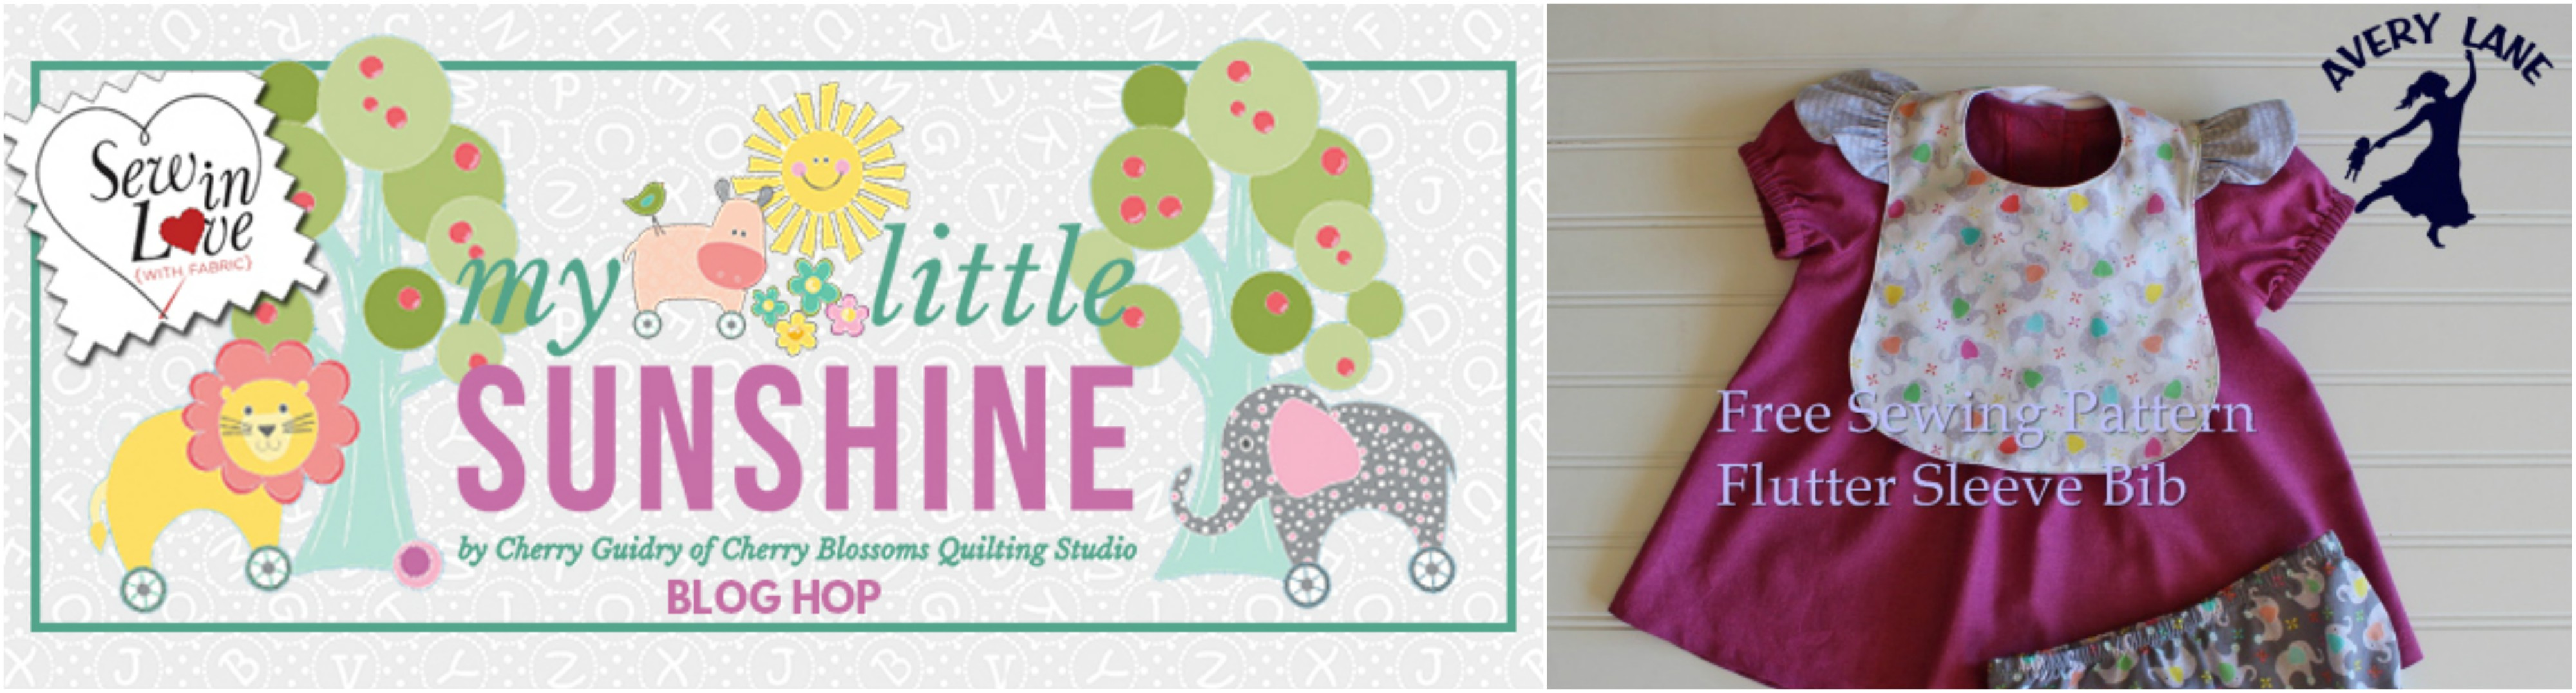 My Little Sunshine Blog Hop, Fabric Giveaway, and a Flutter Sleeve Bib Tutorial